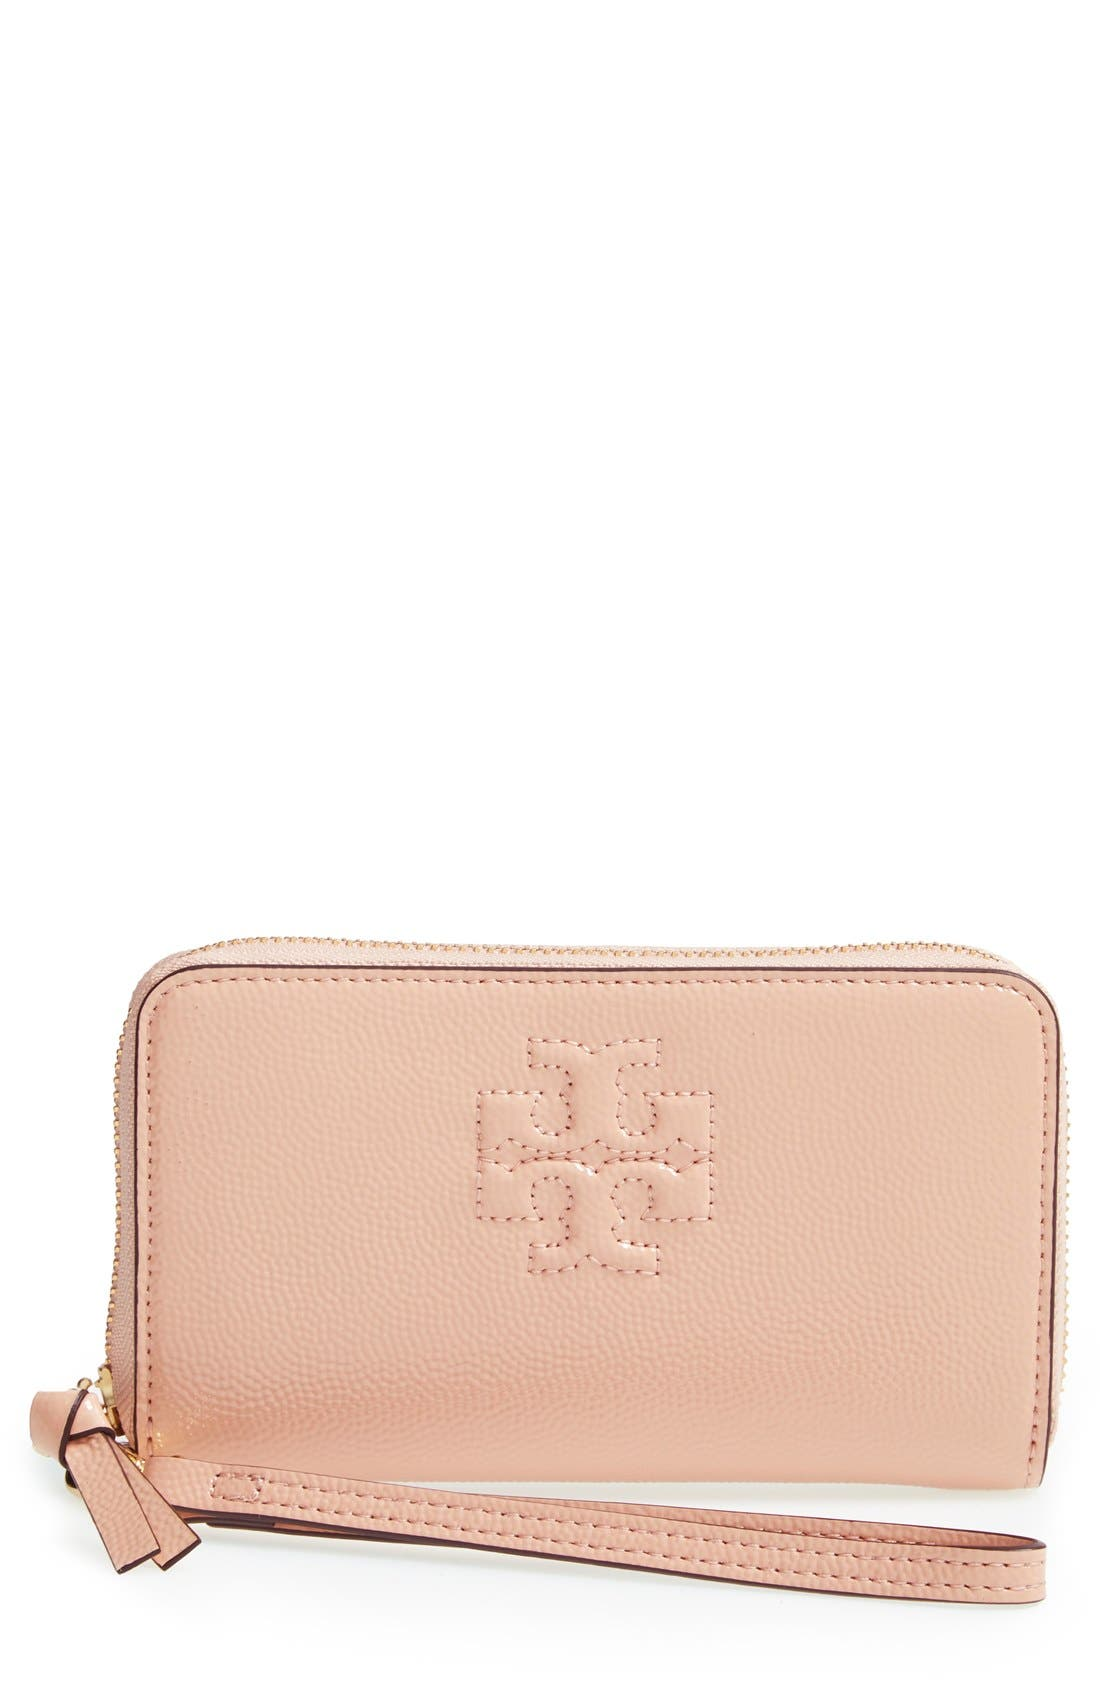 Alternate Image 1 Selected - Tory Burch 'Thea' Smartphone Wristlet Wallet